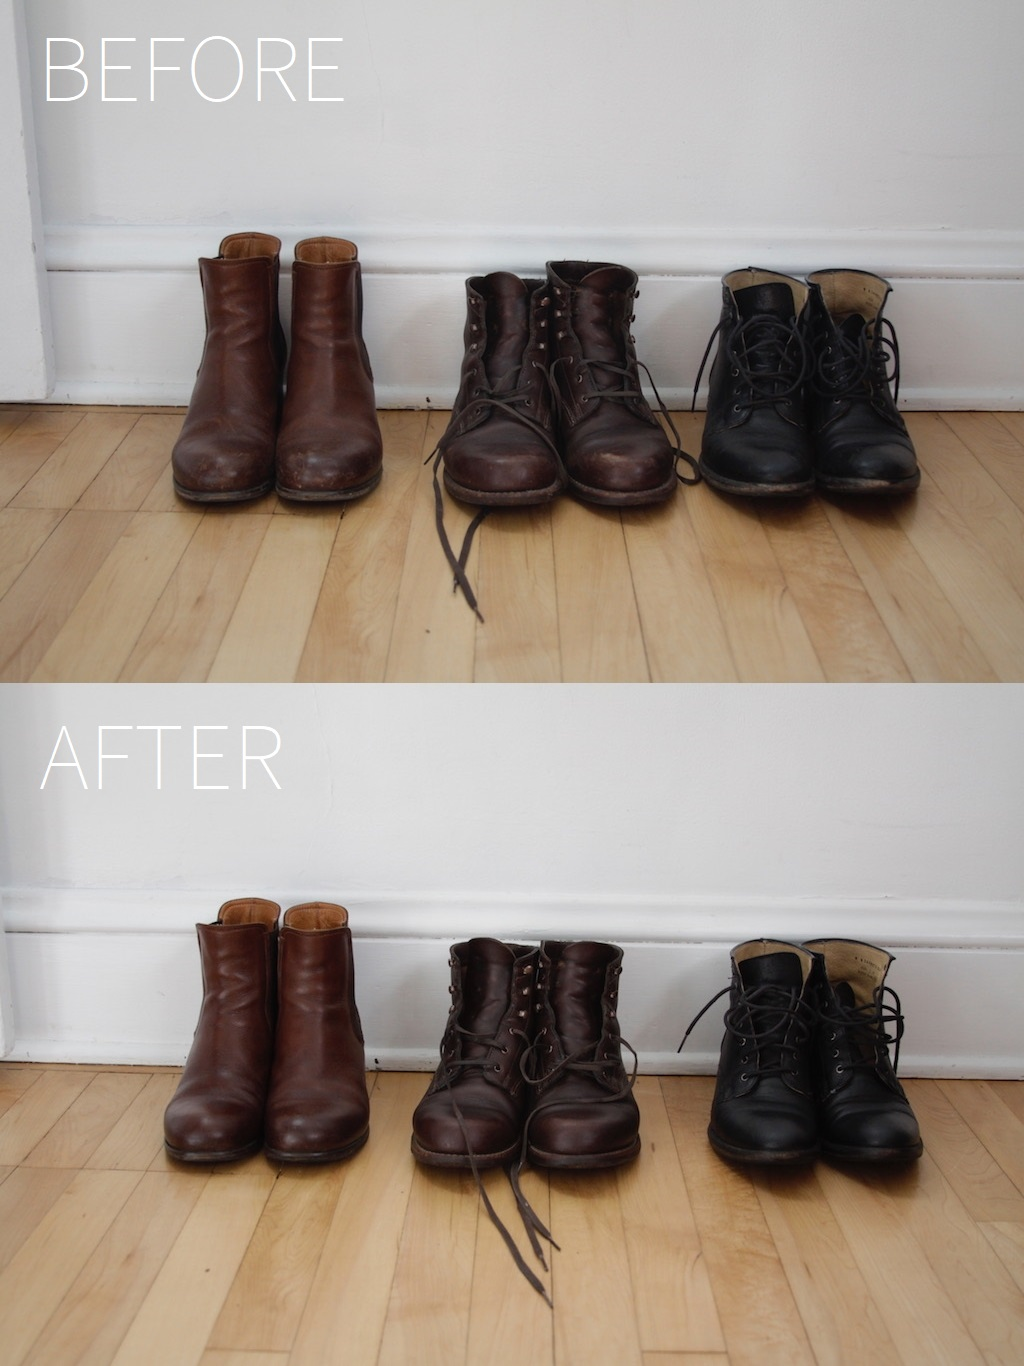 Left:  Gidigio — made in Italy, 2015 — treated with Frye weatherproof dressing  Center:  Wolverine 1000 Mile Boots — made in Michigan, USA, 2015 — treated with mink oil cream   Right:  Frye Carson Lace Up — made in Mexico, 2016 (discontinued) — treated with mink oil cream